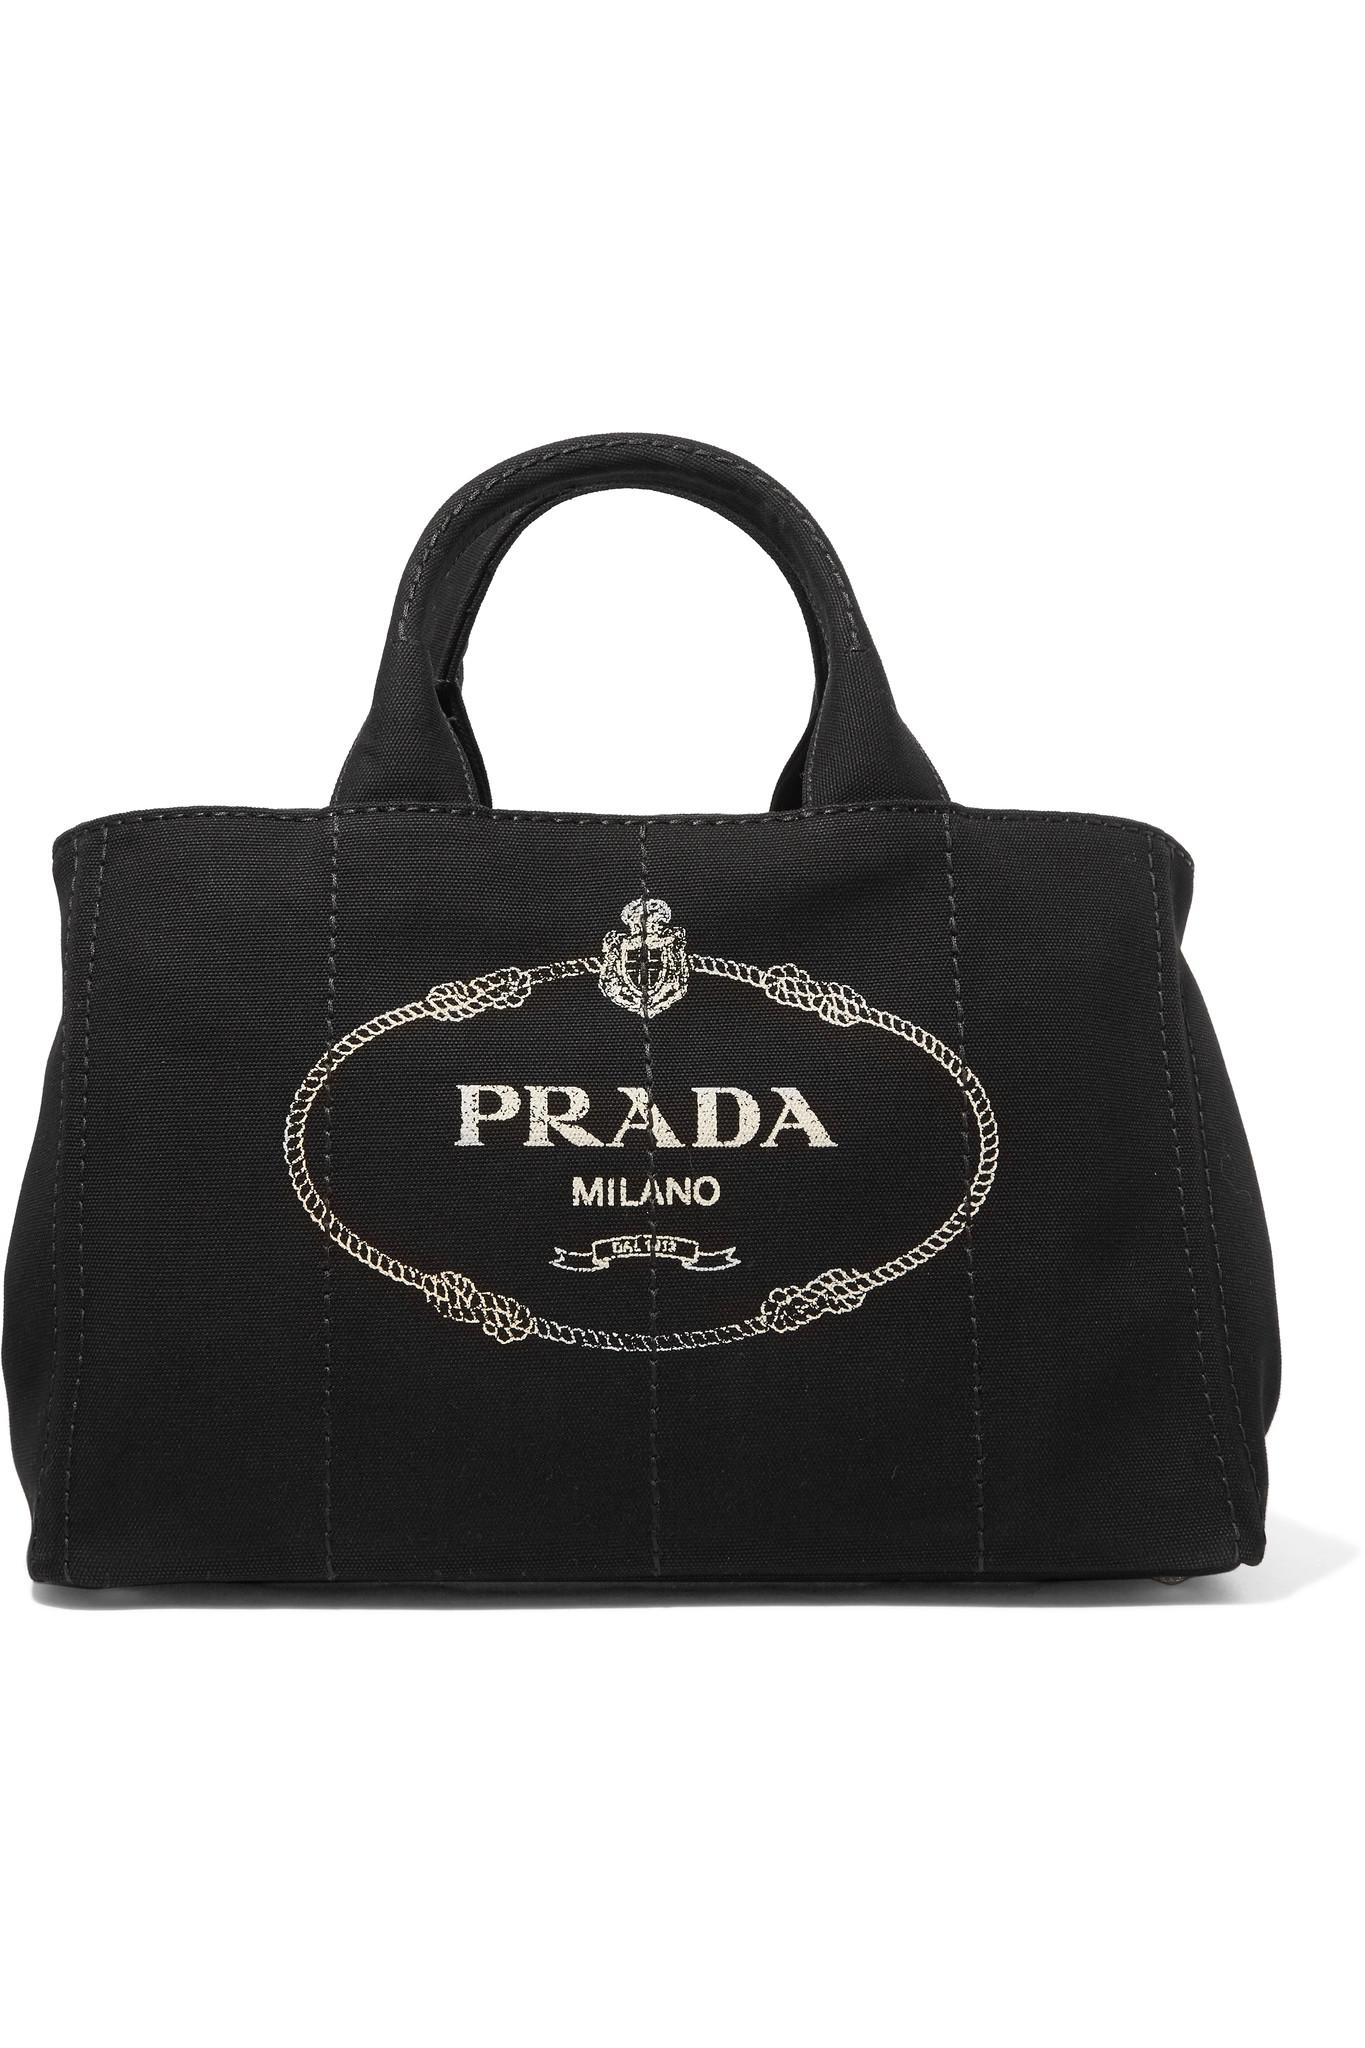 5c7afad64e25 Lyst - Prada Giardiniera Large Printed Canvas Tote in Black